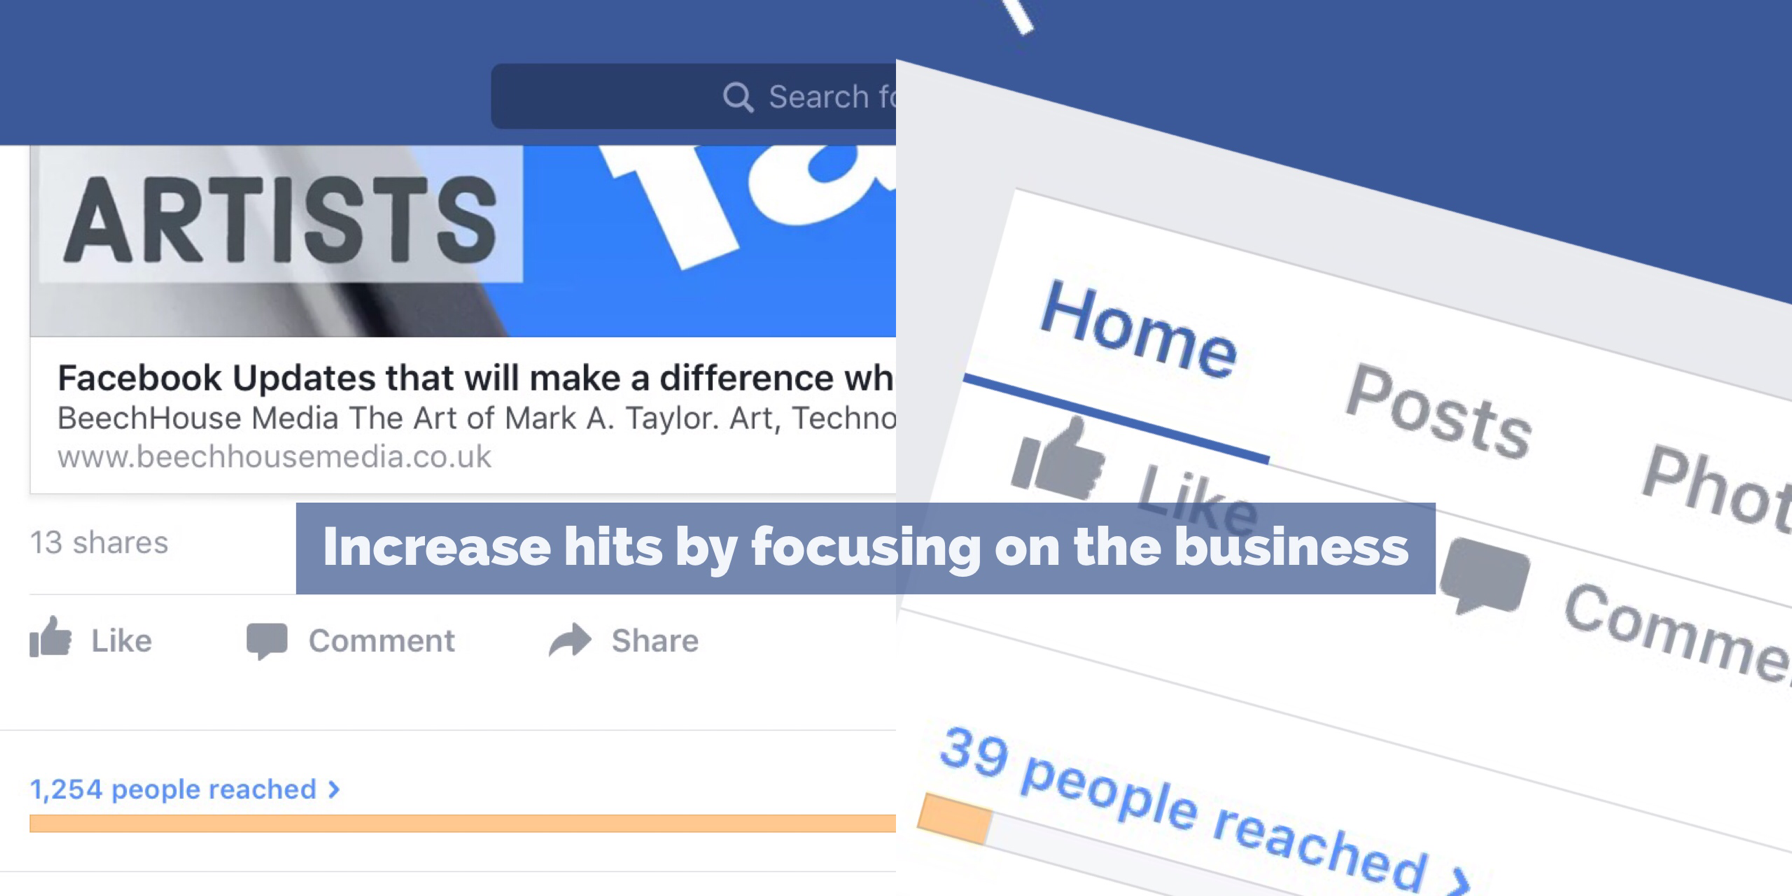 focus on the business within Facebook for artists